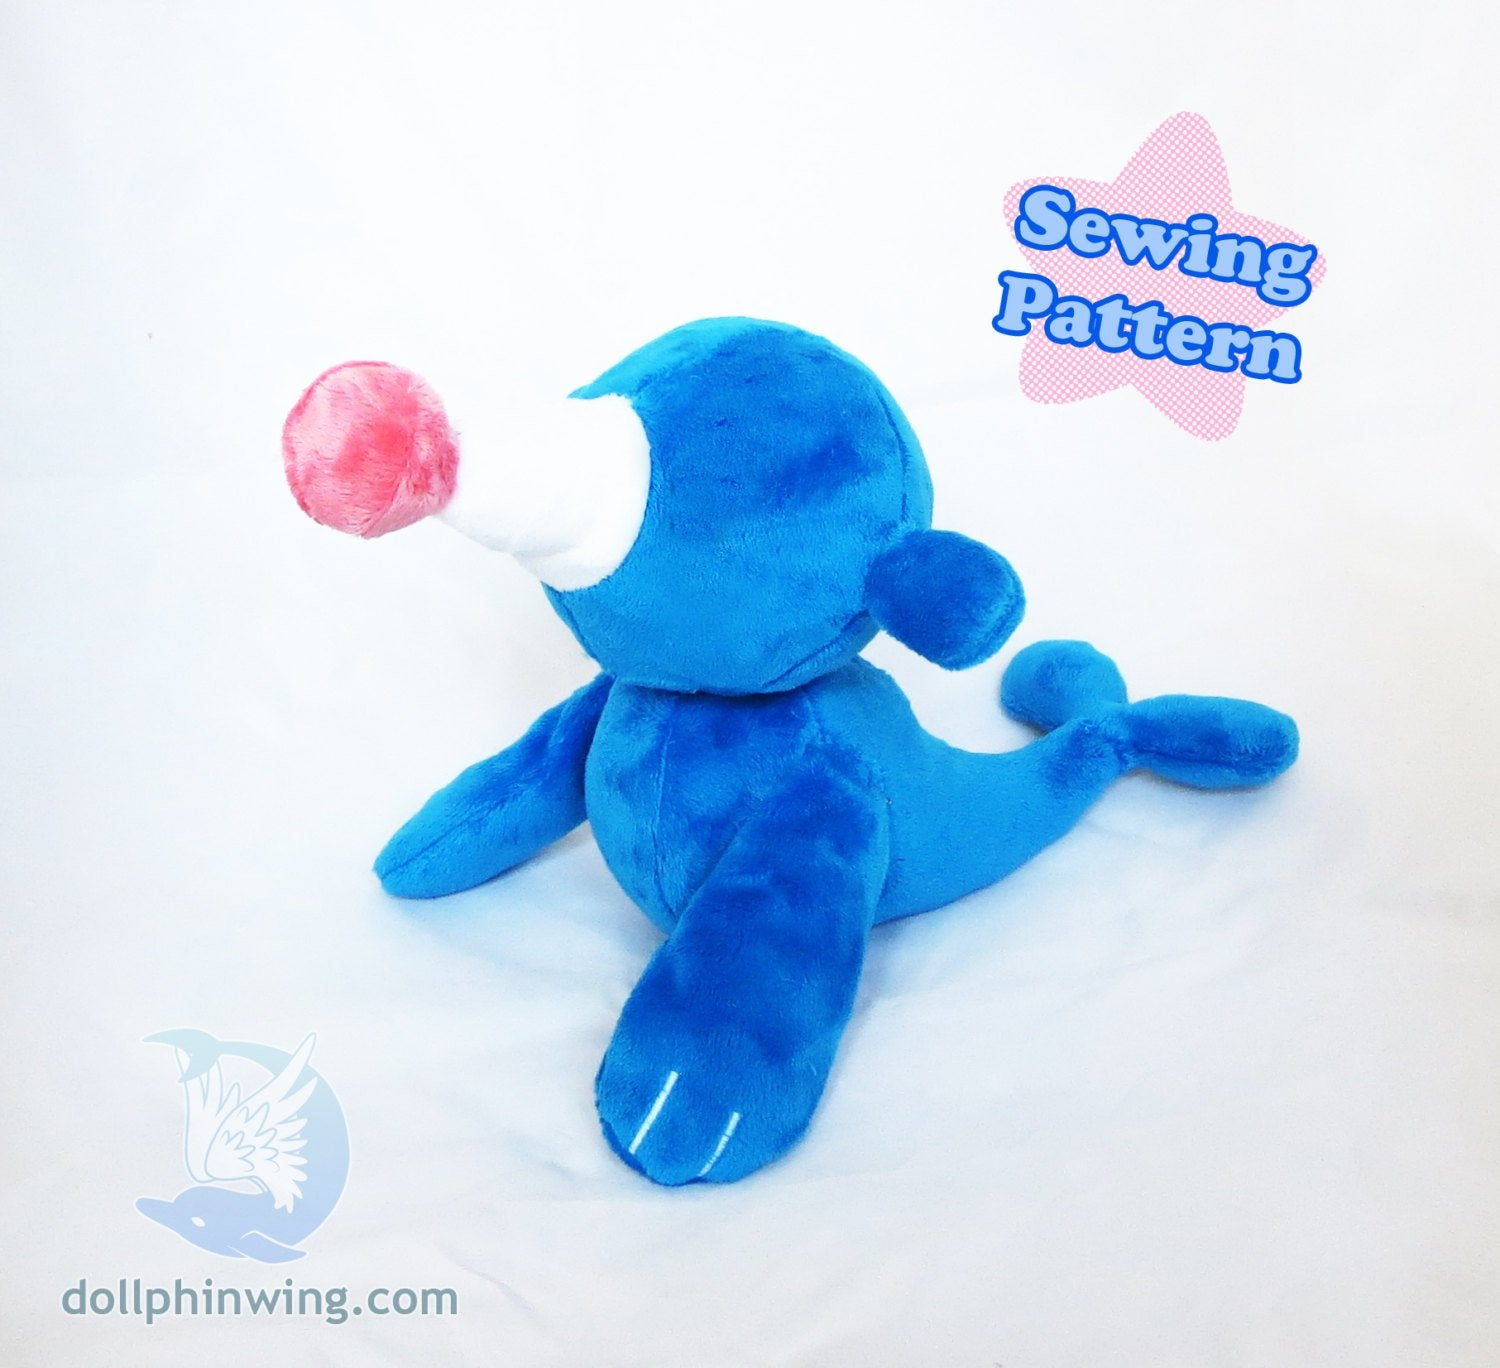 Circus Seal Plush Sewing Pattern sewing pattern and tutorial ocean, pdf_pattern, plush_sewing_pattern, pokemon, sewing_pattern